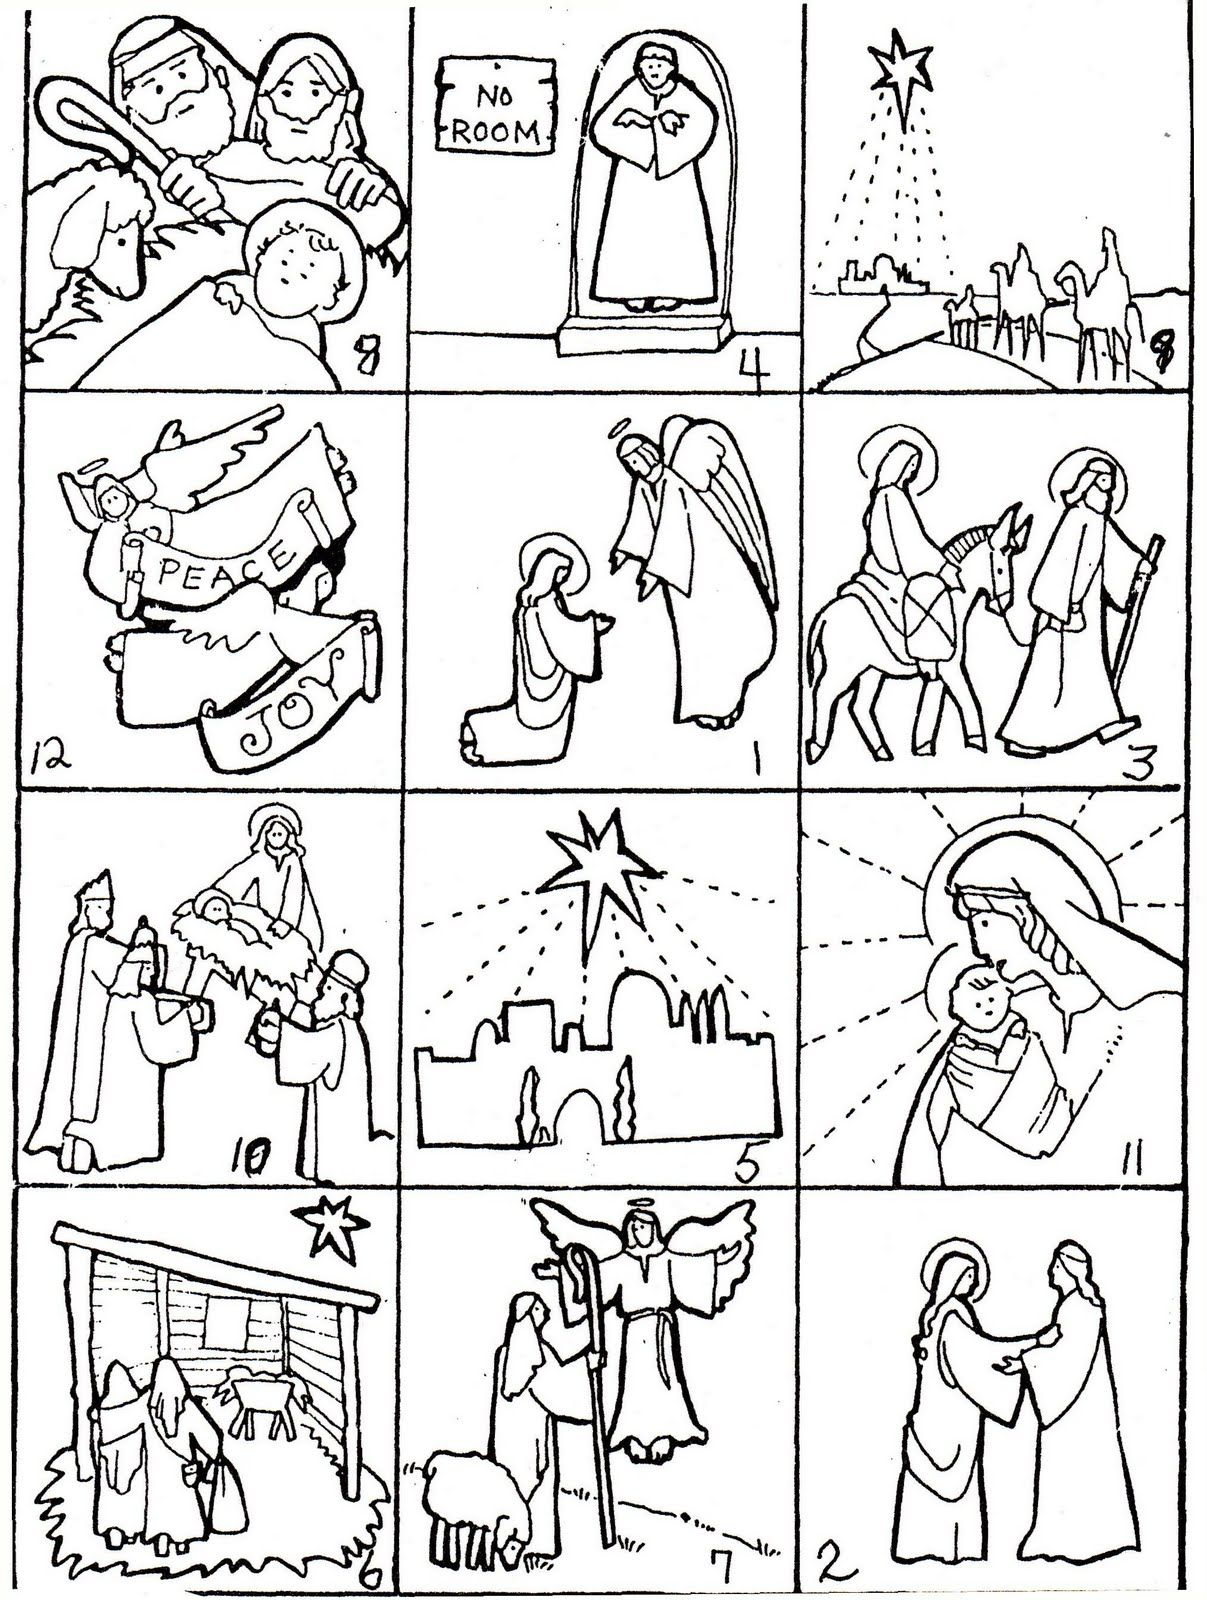 Christmas+Story (Image) | Story Sequencing, The Nativity